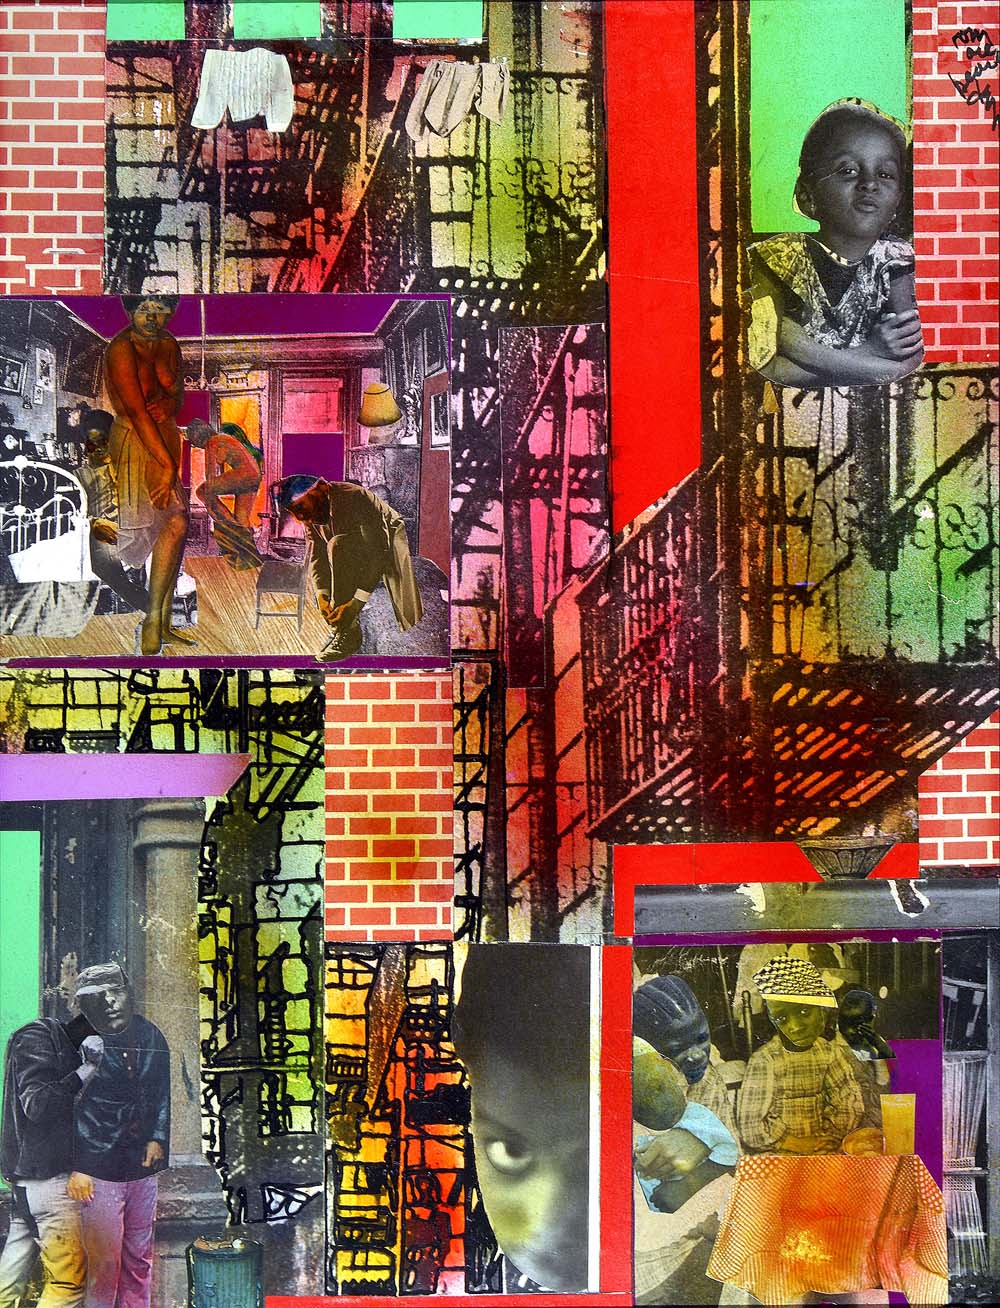 The colorful collage by Romare Bearden depicts a brick wall and little scenes as if the viewer is peering into the windows of an apartment building.